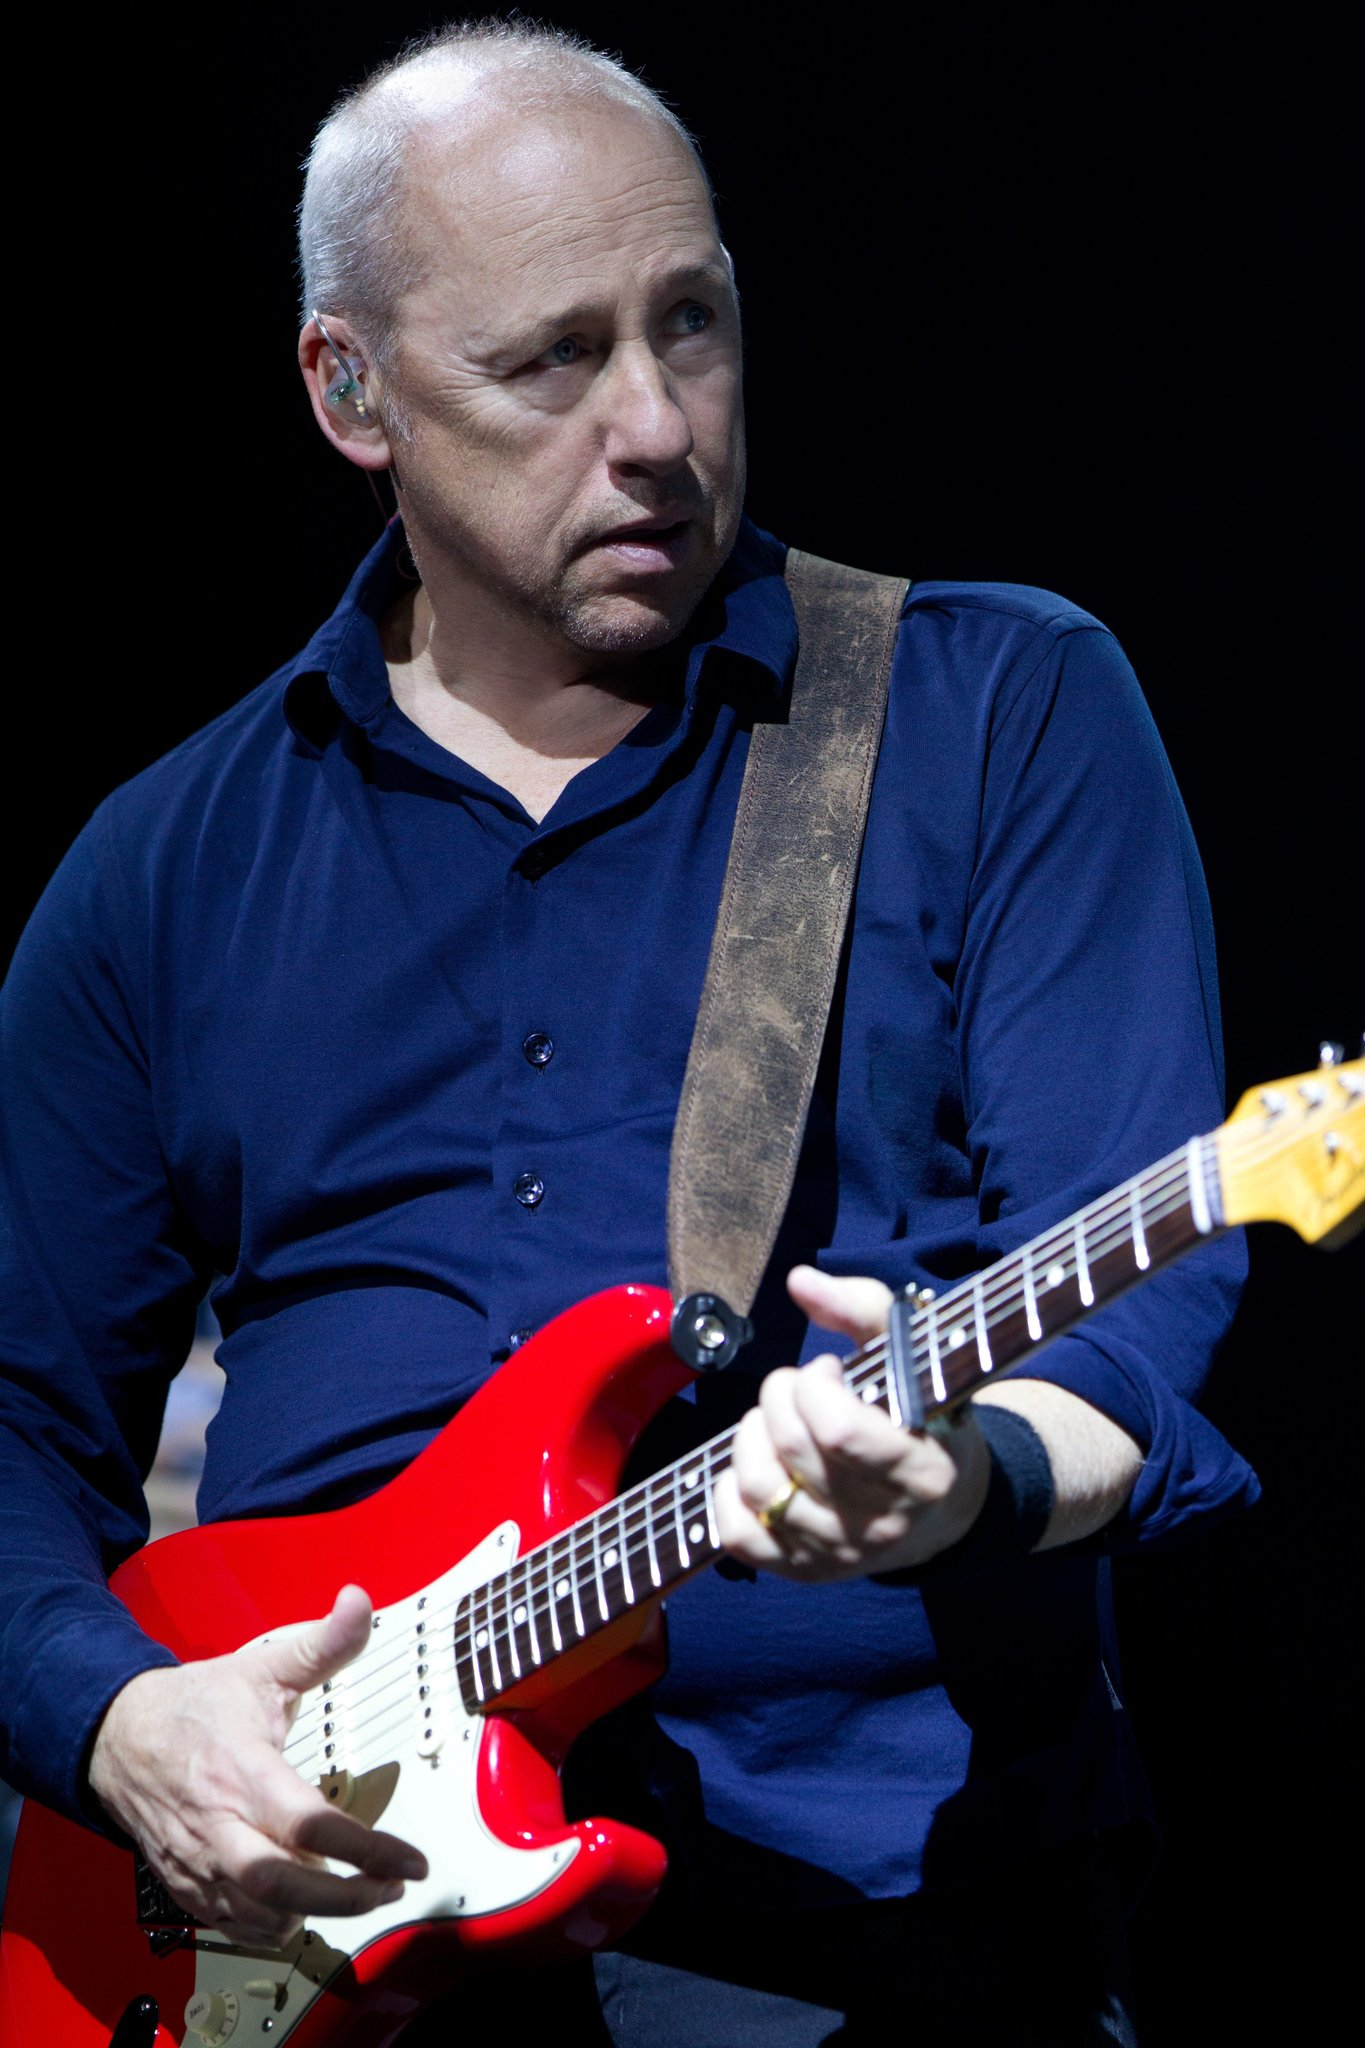 Happy 68th Birthday Mark Knopfler  May you have fantastic day!